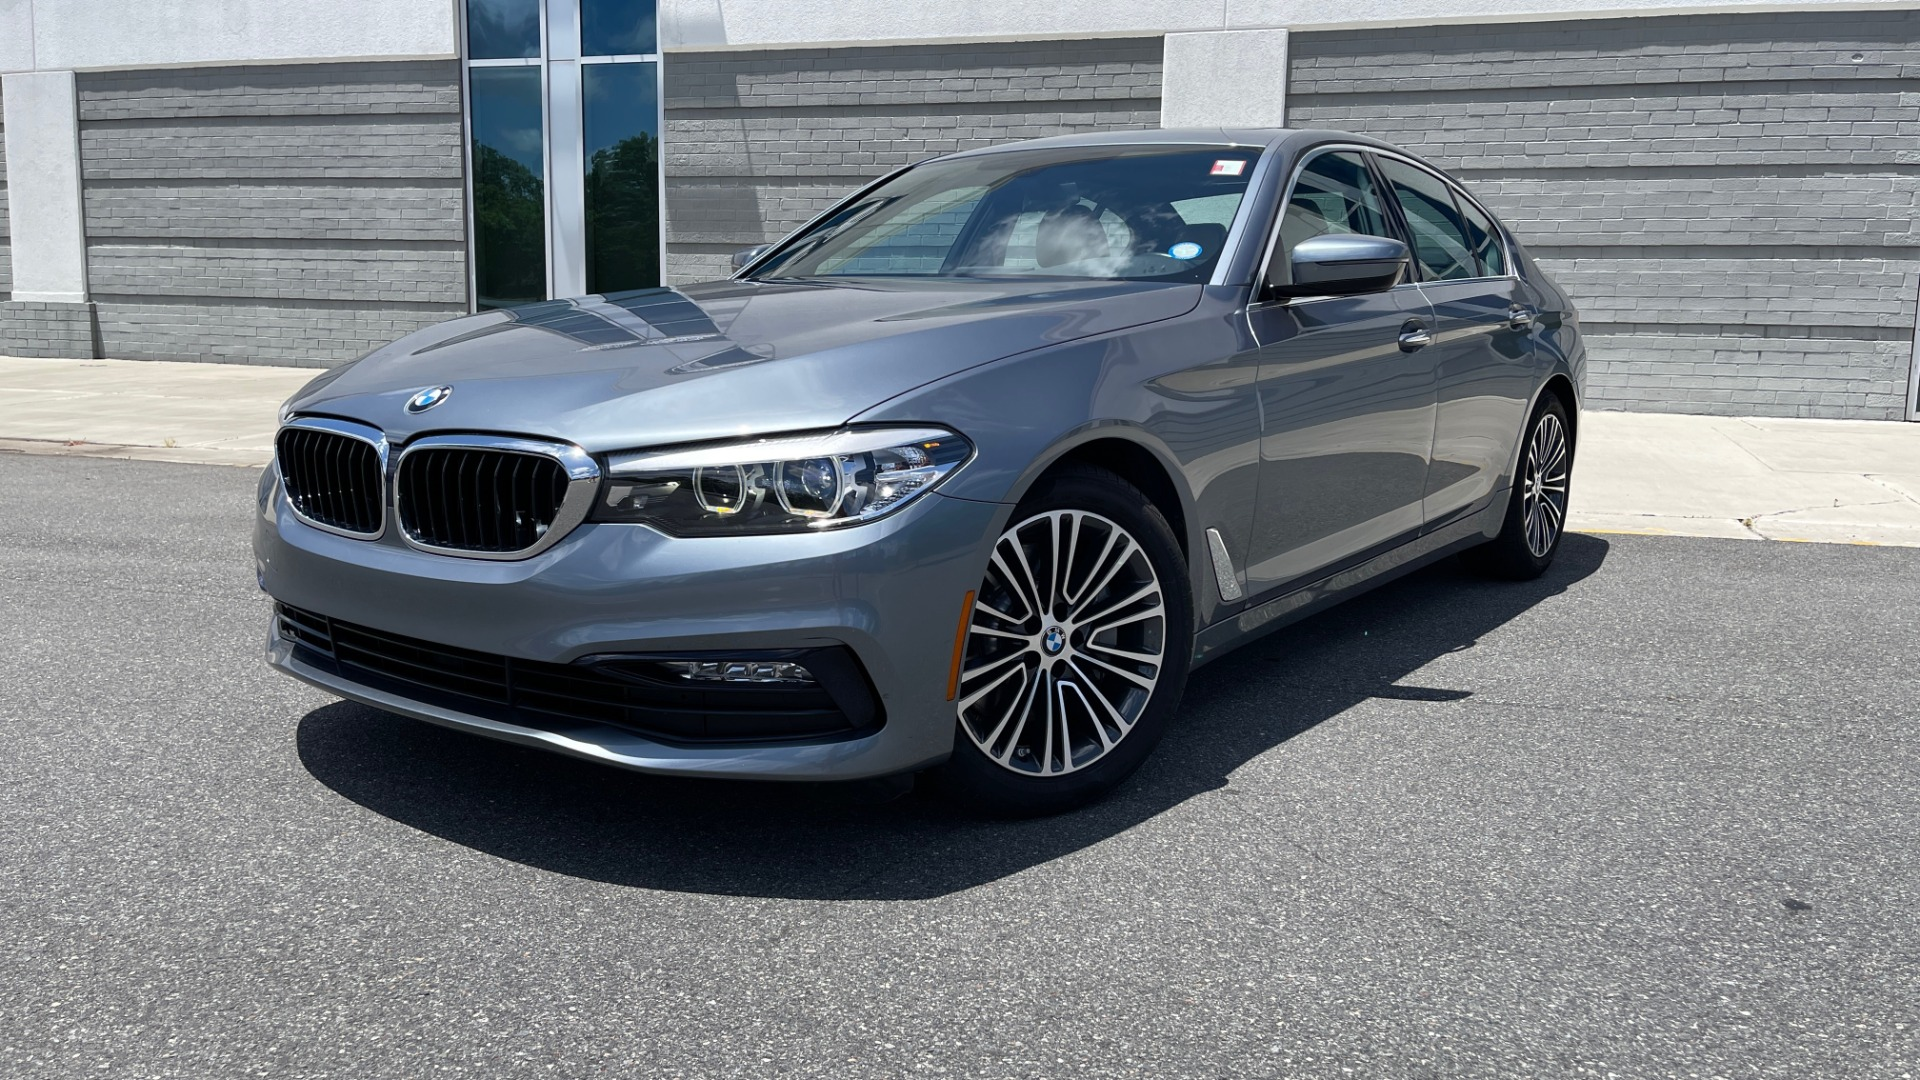 Used 2017 BMW 5 SERIES 530I PREMIUM / WIFI / NAV / SUNROOF / AUTO CLIMATE CONTROL for sale $31,795 at Formula Imports in Charlotte NC 28227 1